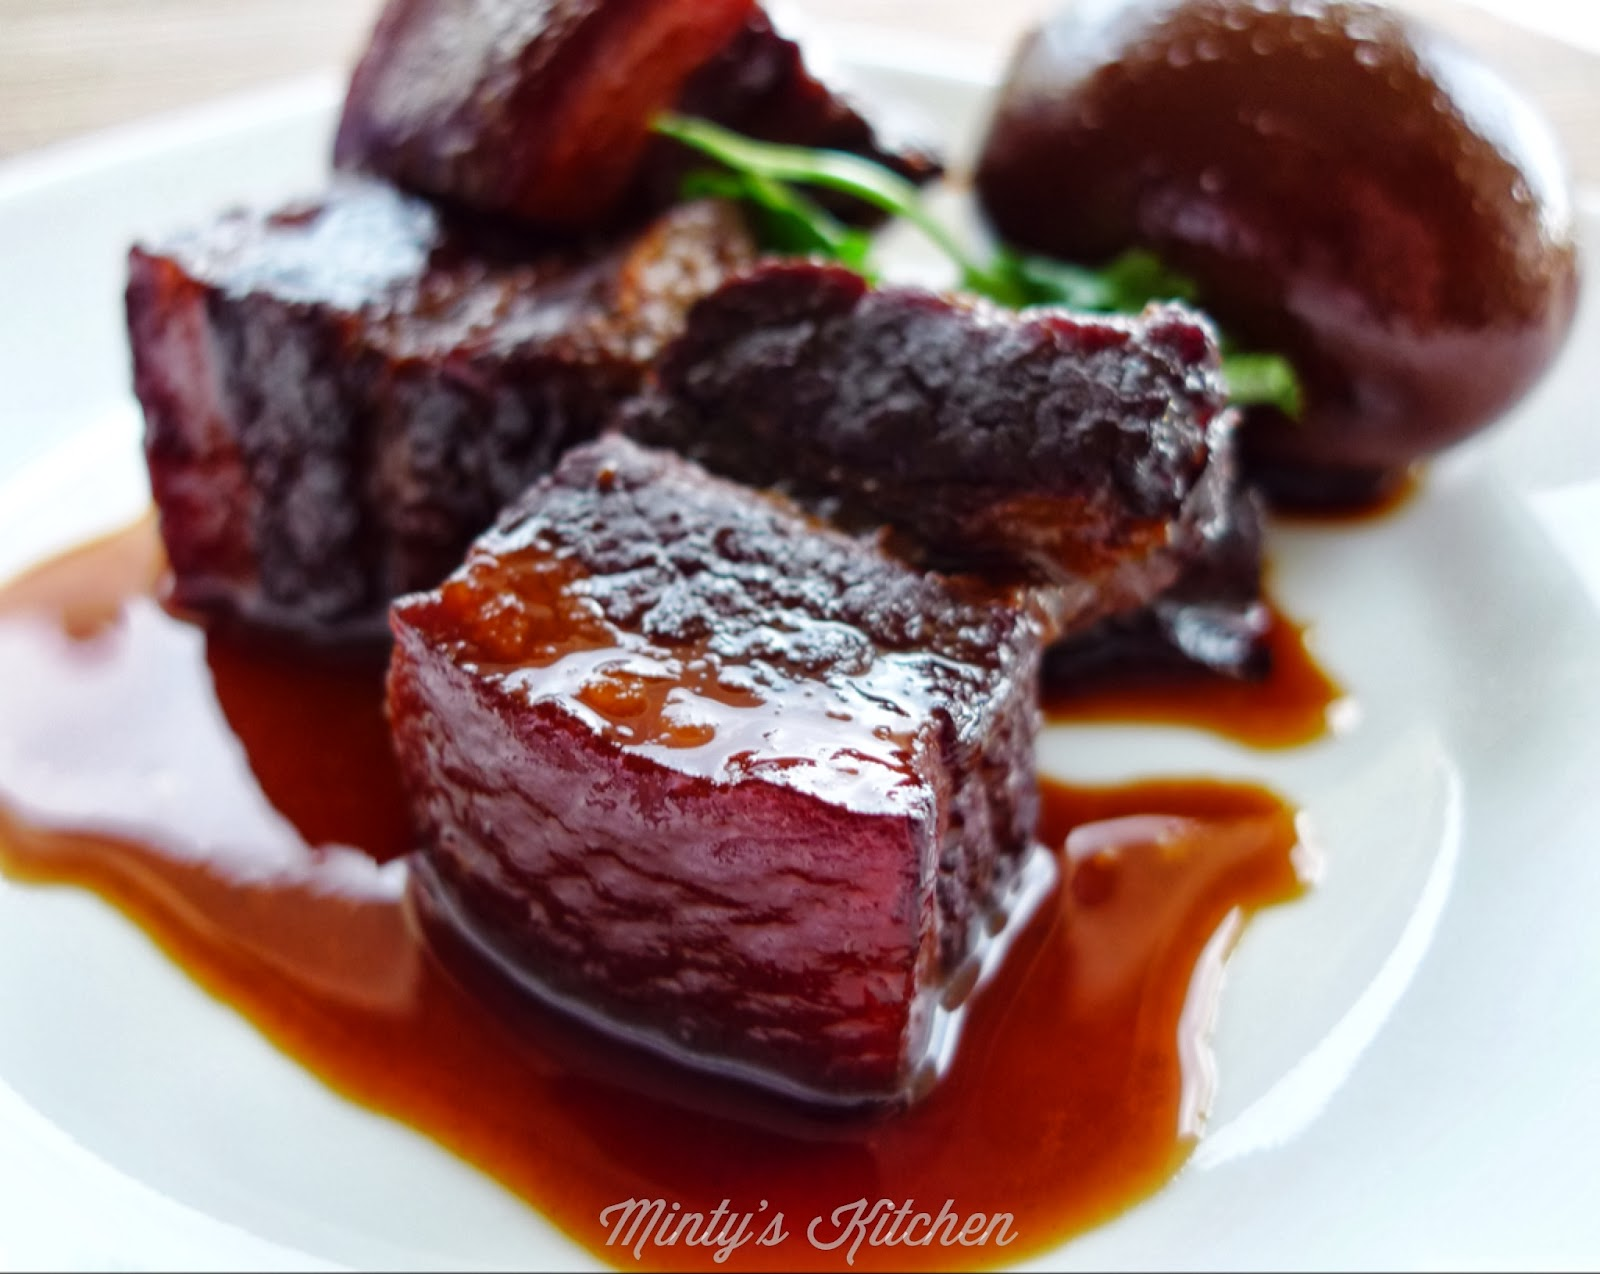 Minty's Kitchen: Red-Cooked Pork Belly (红烧肉)